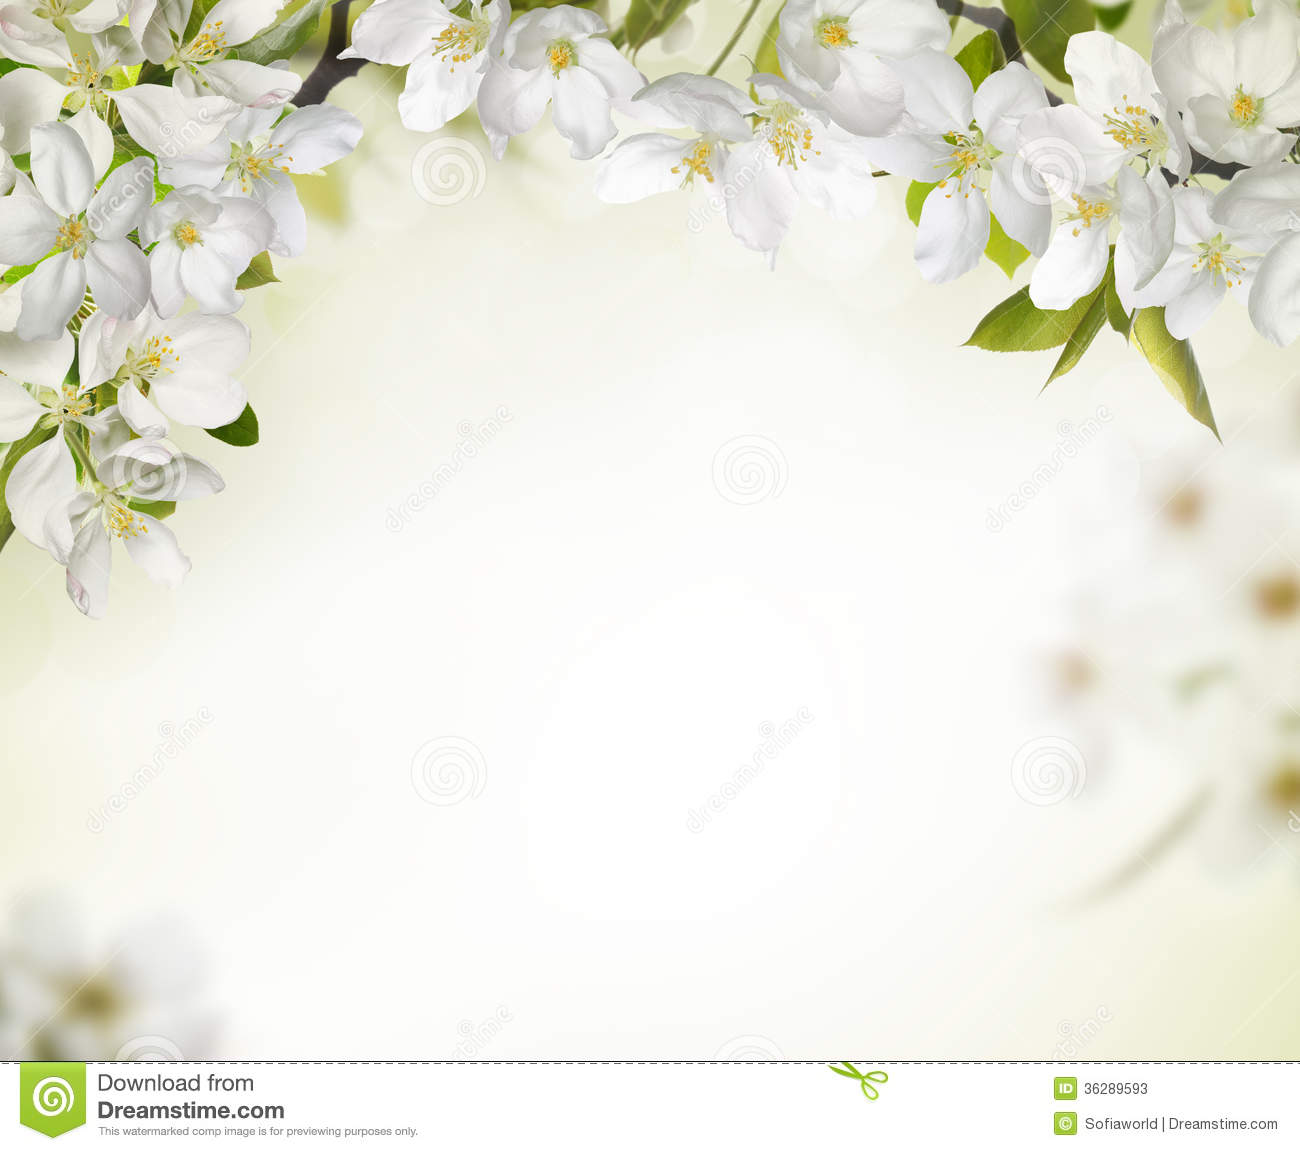 Spring Cherry Blossom Backgrounds Stock Photos - Image: 36289593